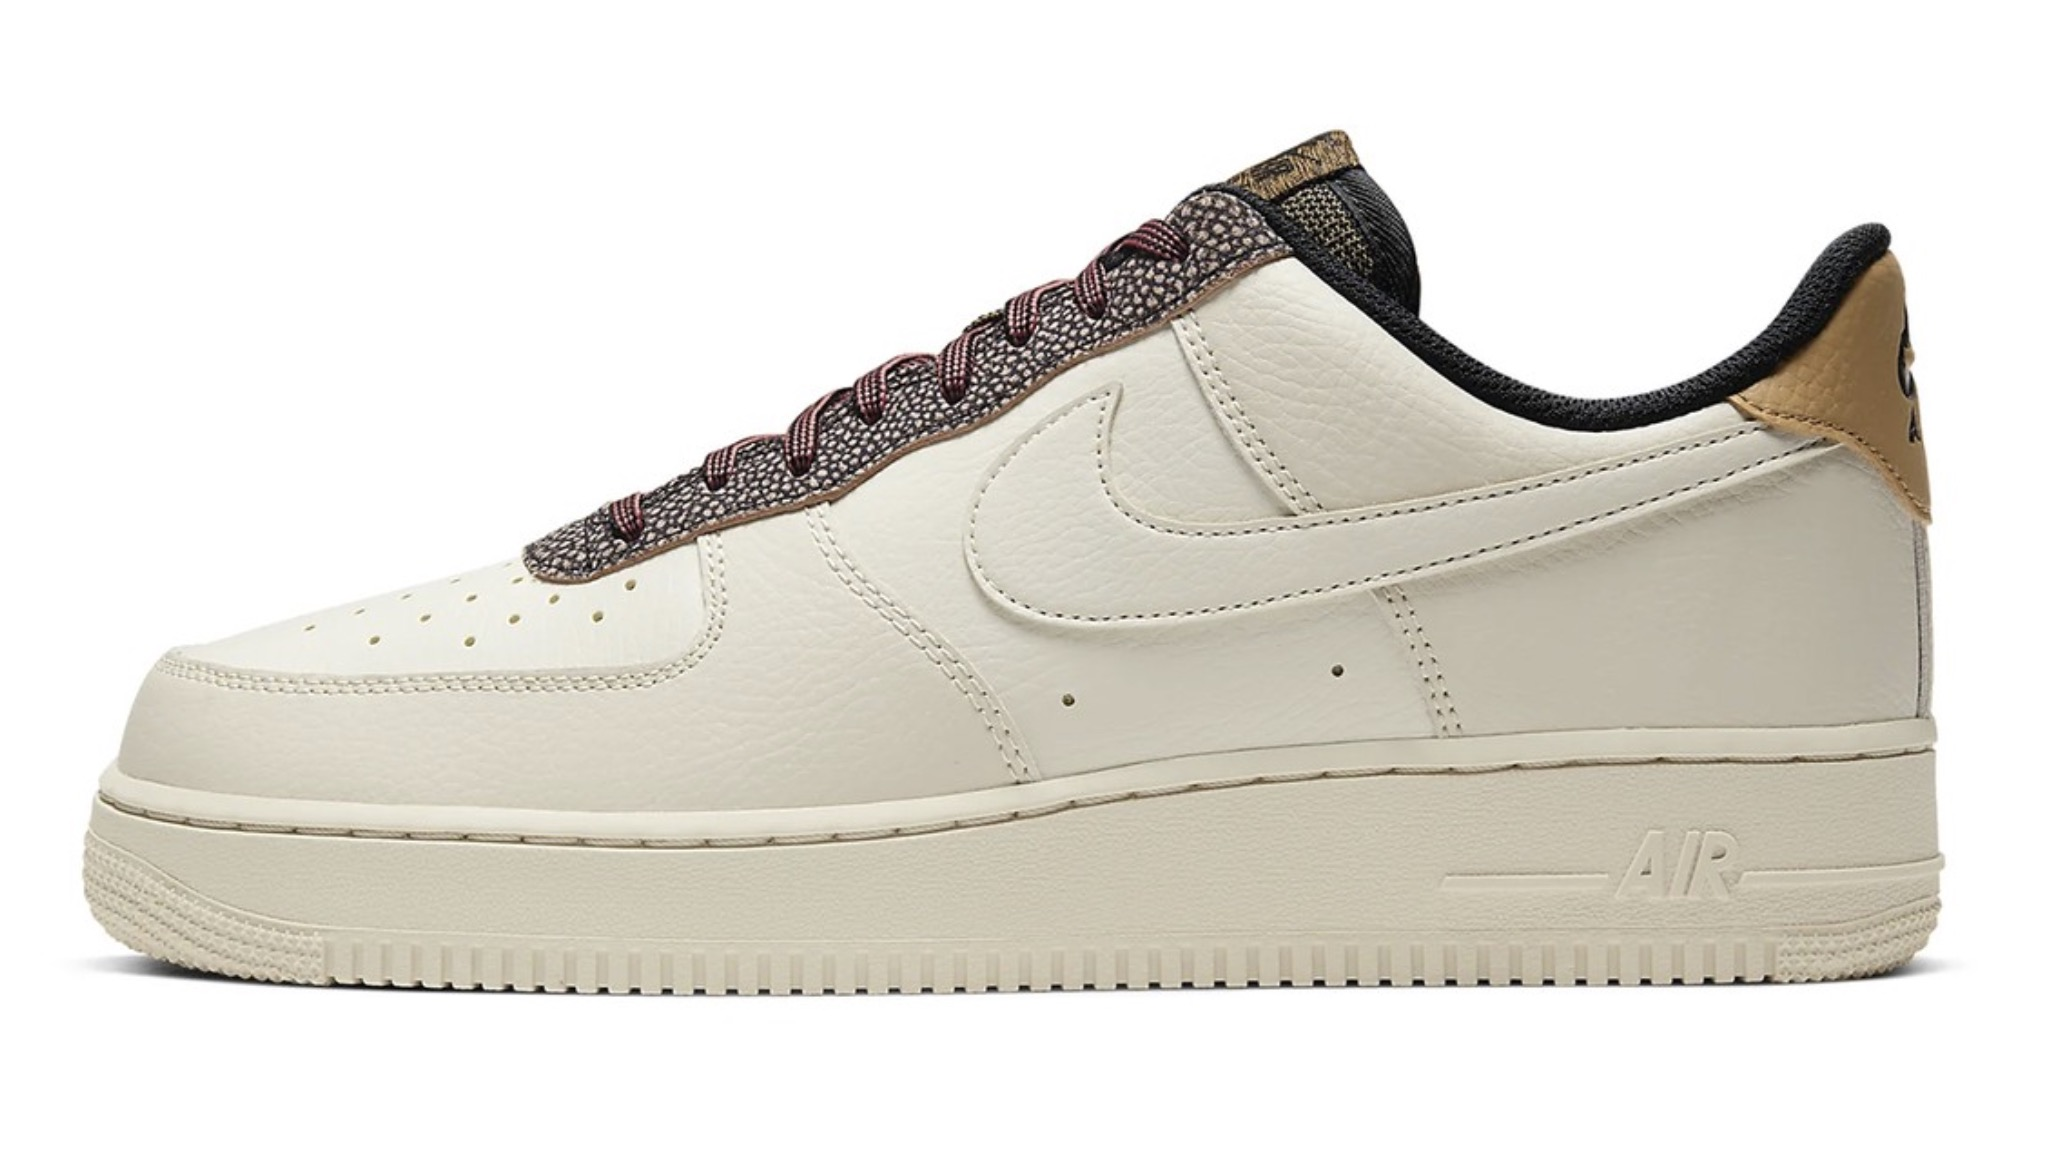 """Nike's Air Force 1 07 in """"Fossil:Wheat:Shimmer"""" 5 left"""